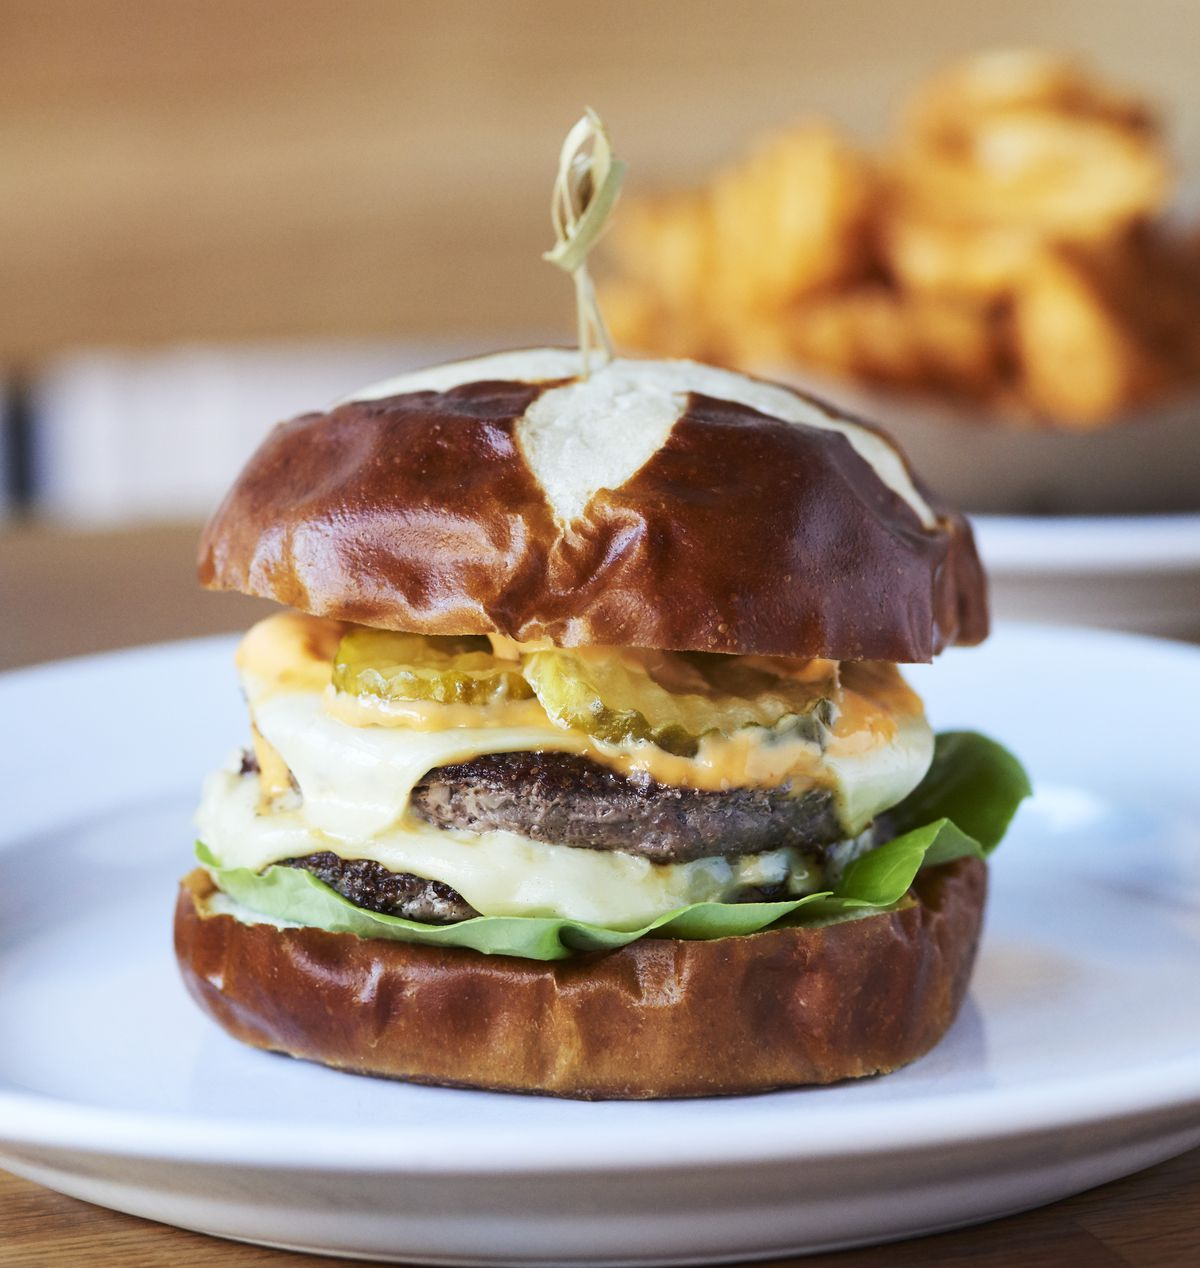 Double stack cheese burger Le Big Matt served on a pretzel bun topped with melted Amercian cheese, pickle chips and lettuce on the bottom